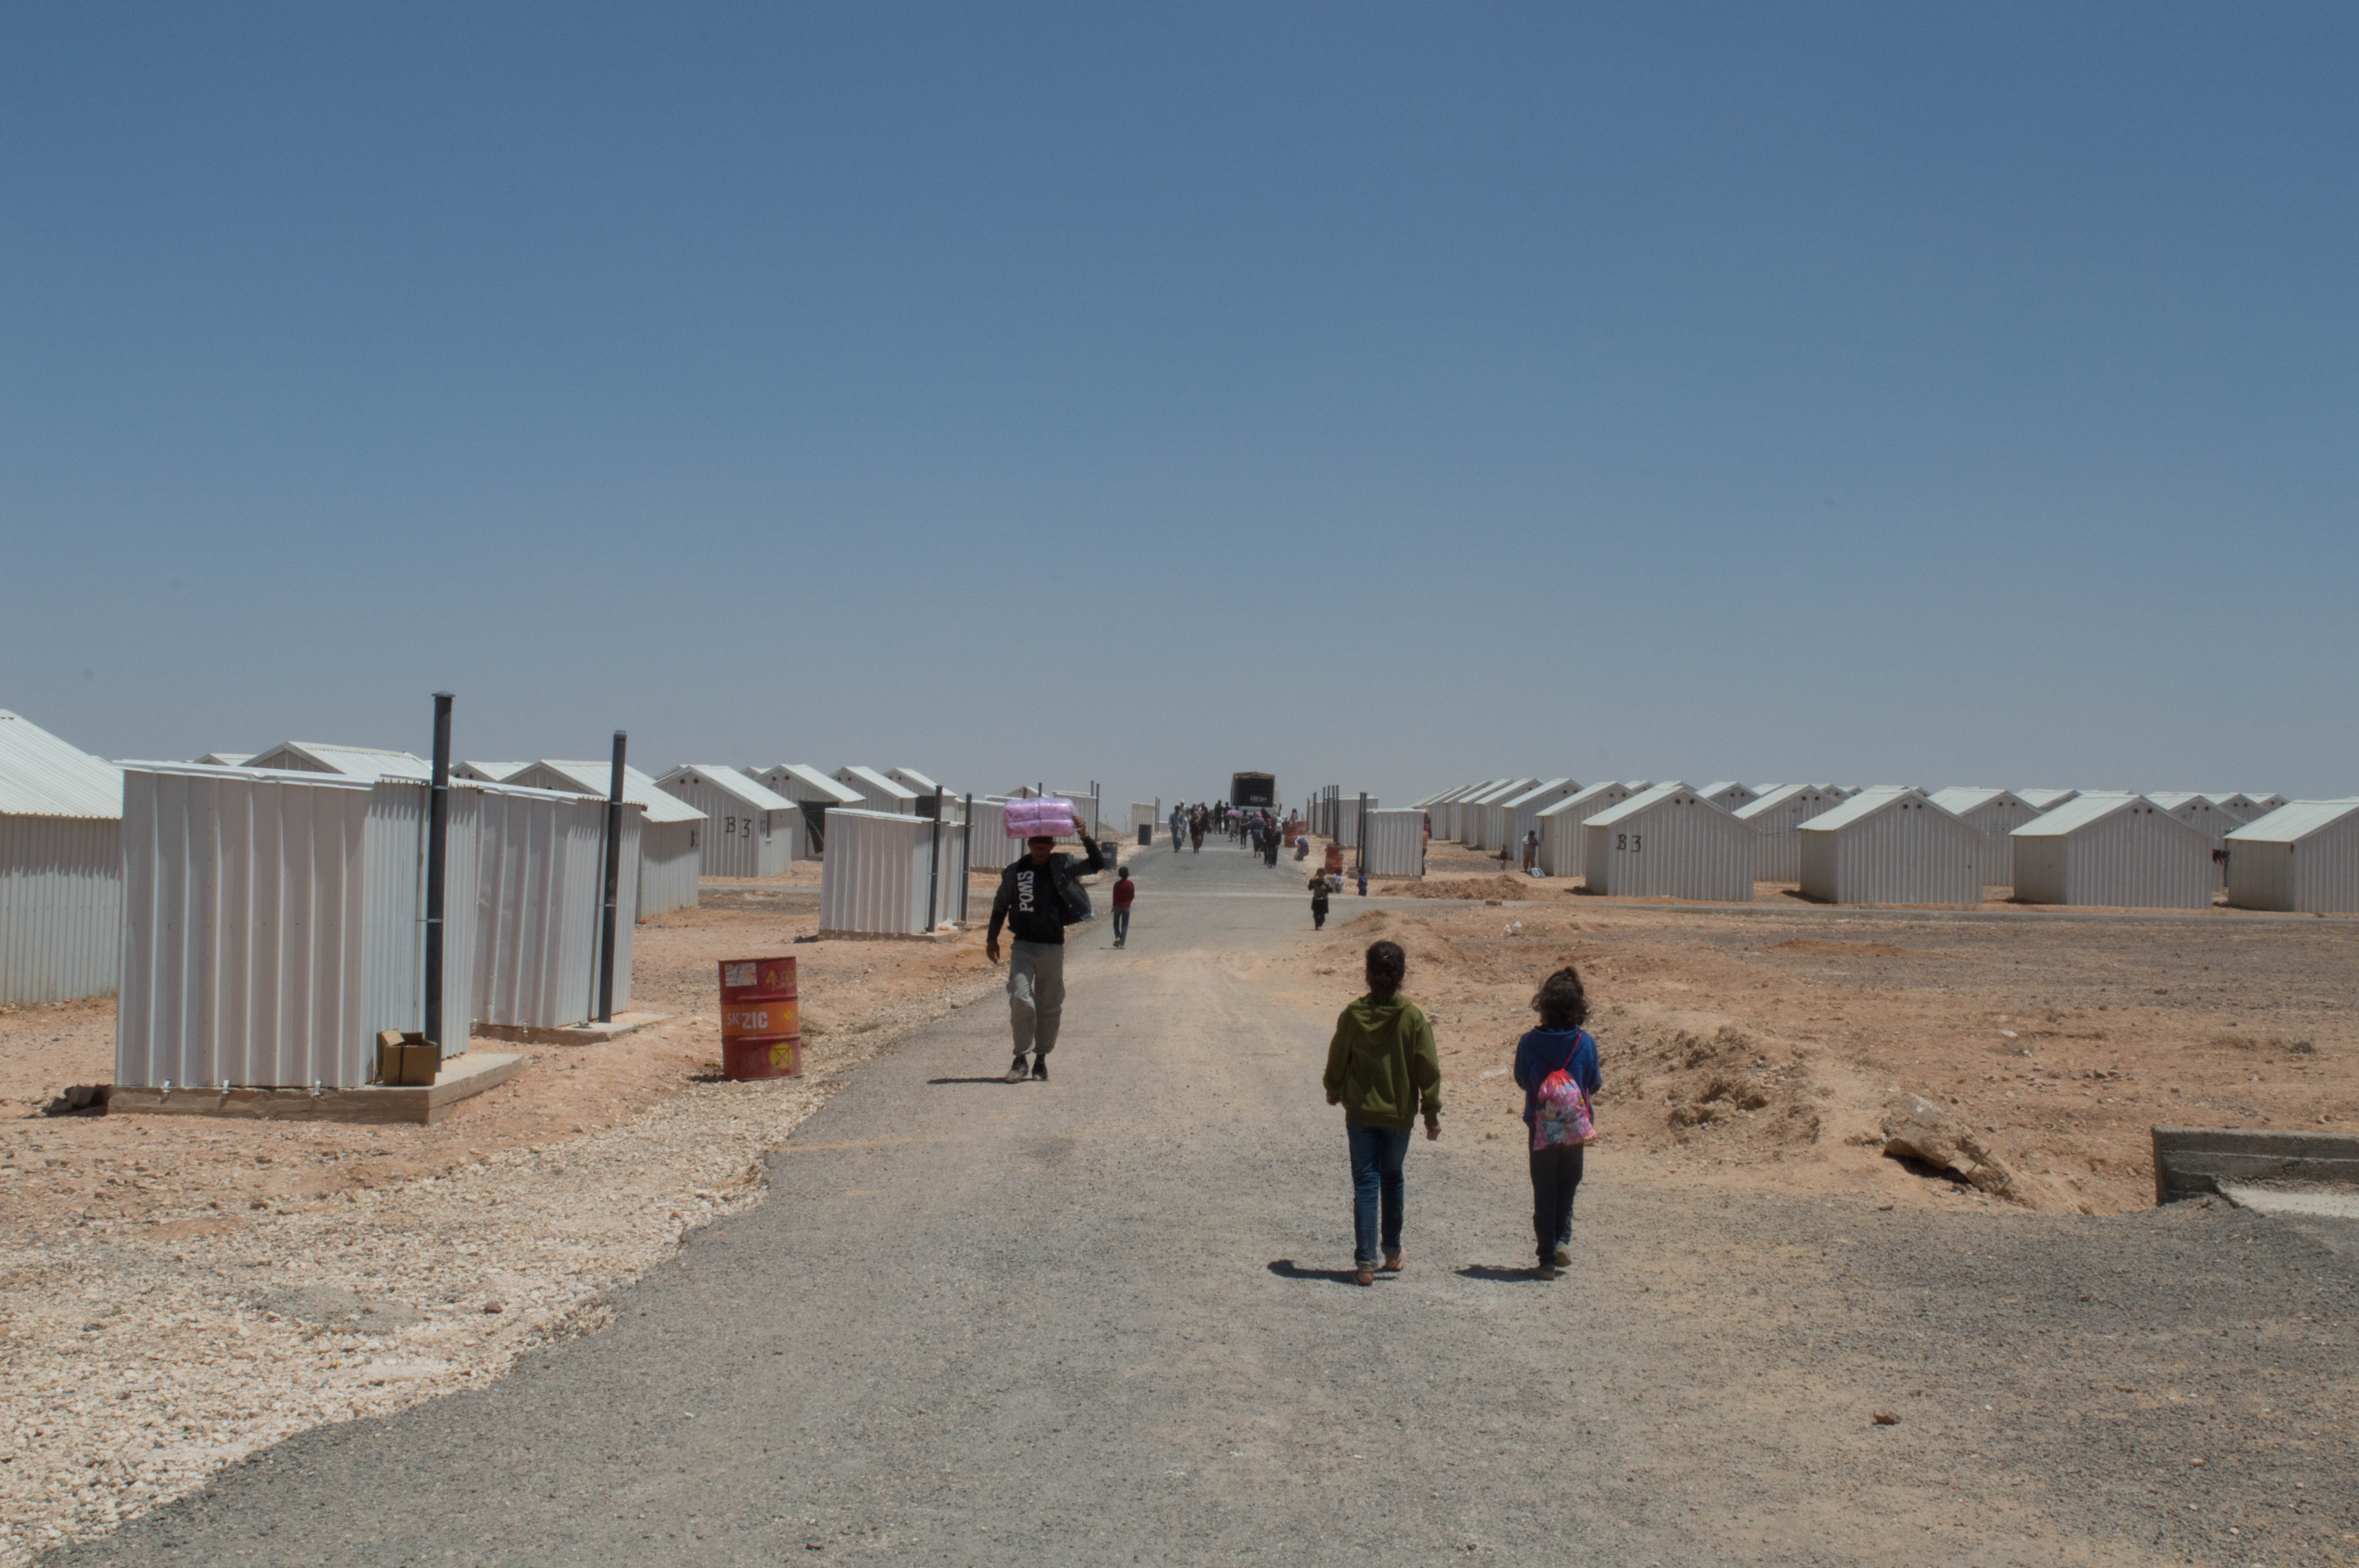 Children walking in a refugee camp